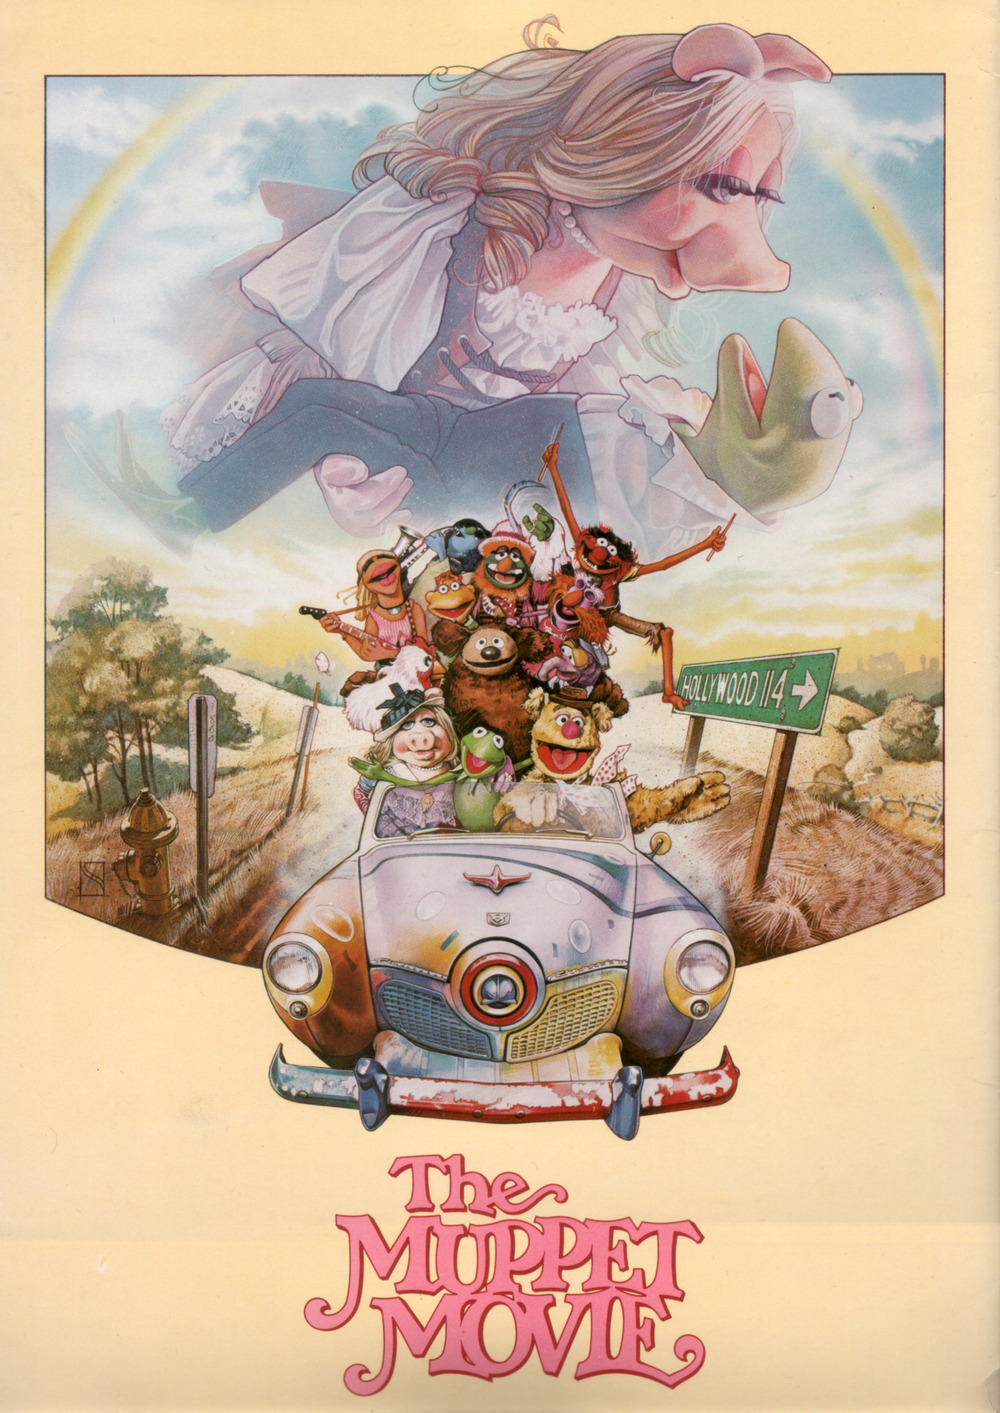 The-Muppet-Movie-Poster.jpg